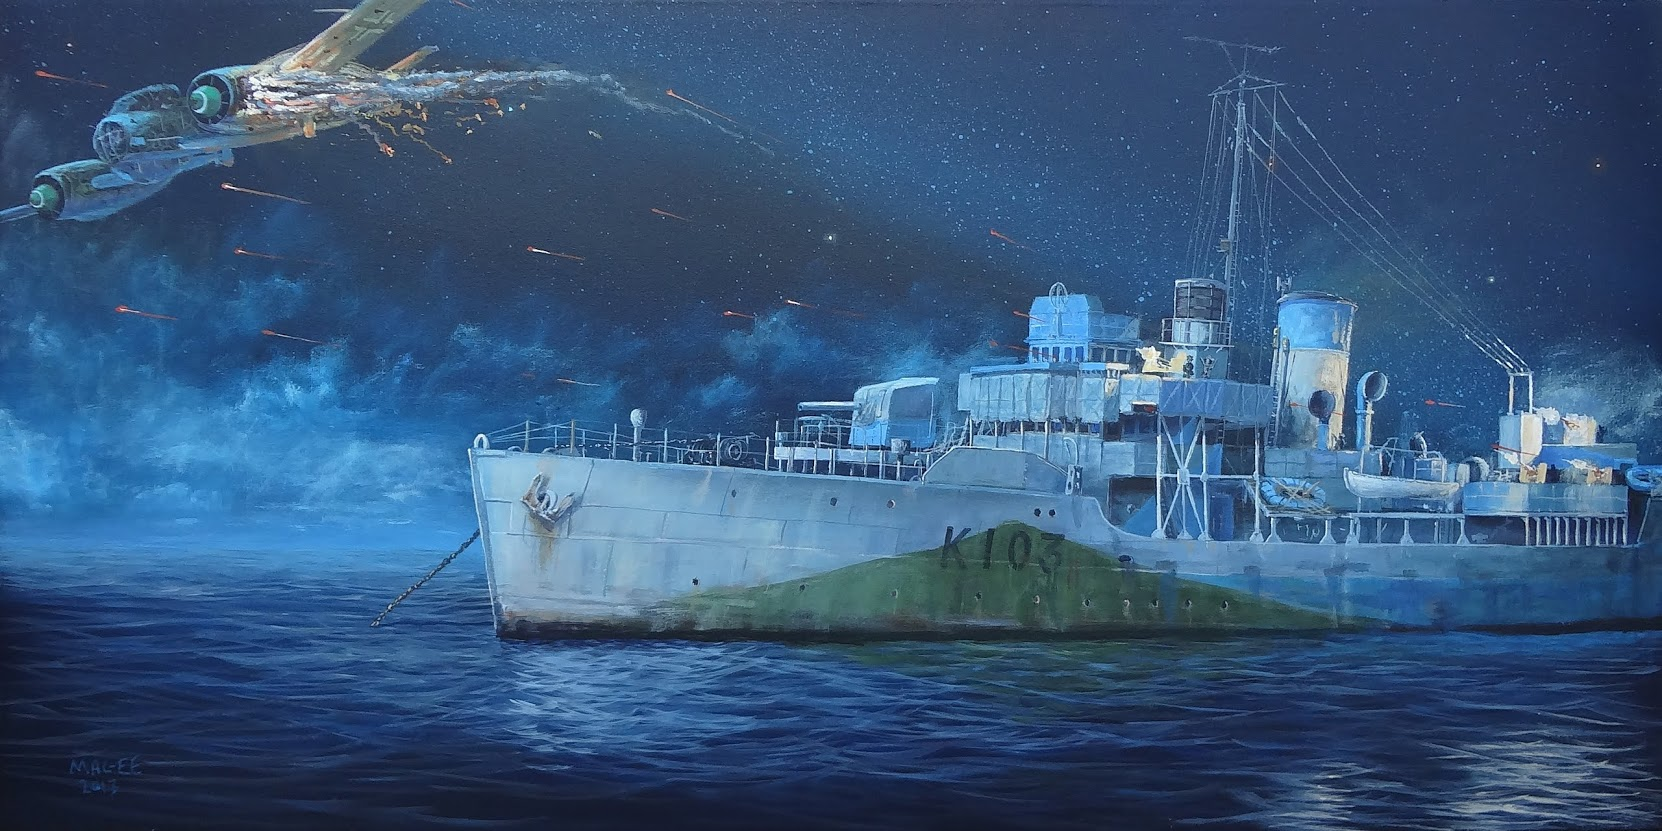 HMCS ALBERNI shooting down a German Junkers 88 aircraft, that was attacking the corvette off the coast of France on 26 July 1944. Painting by Marc Magee.